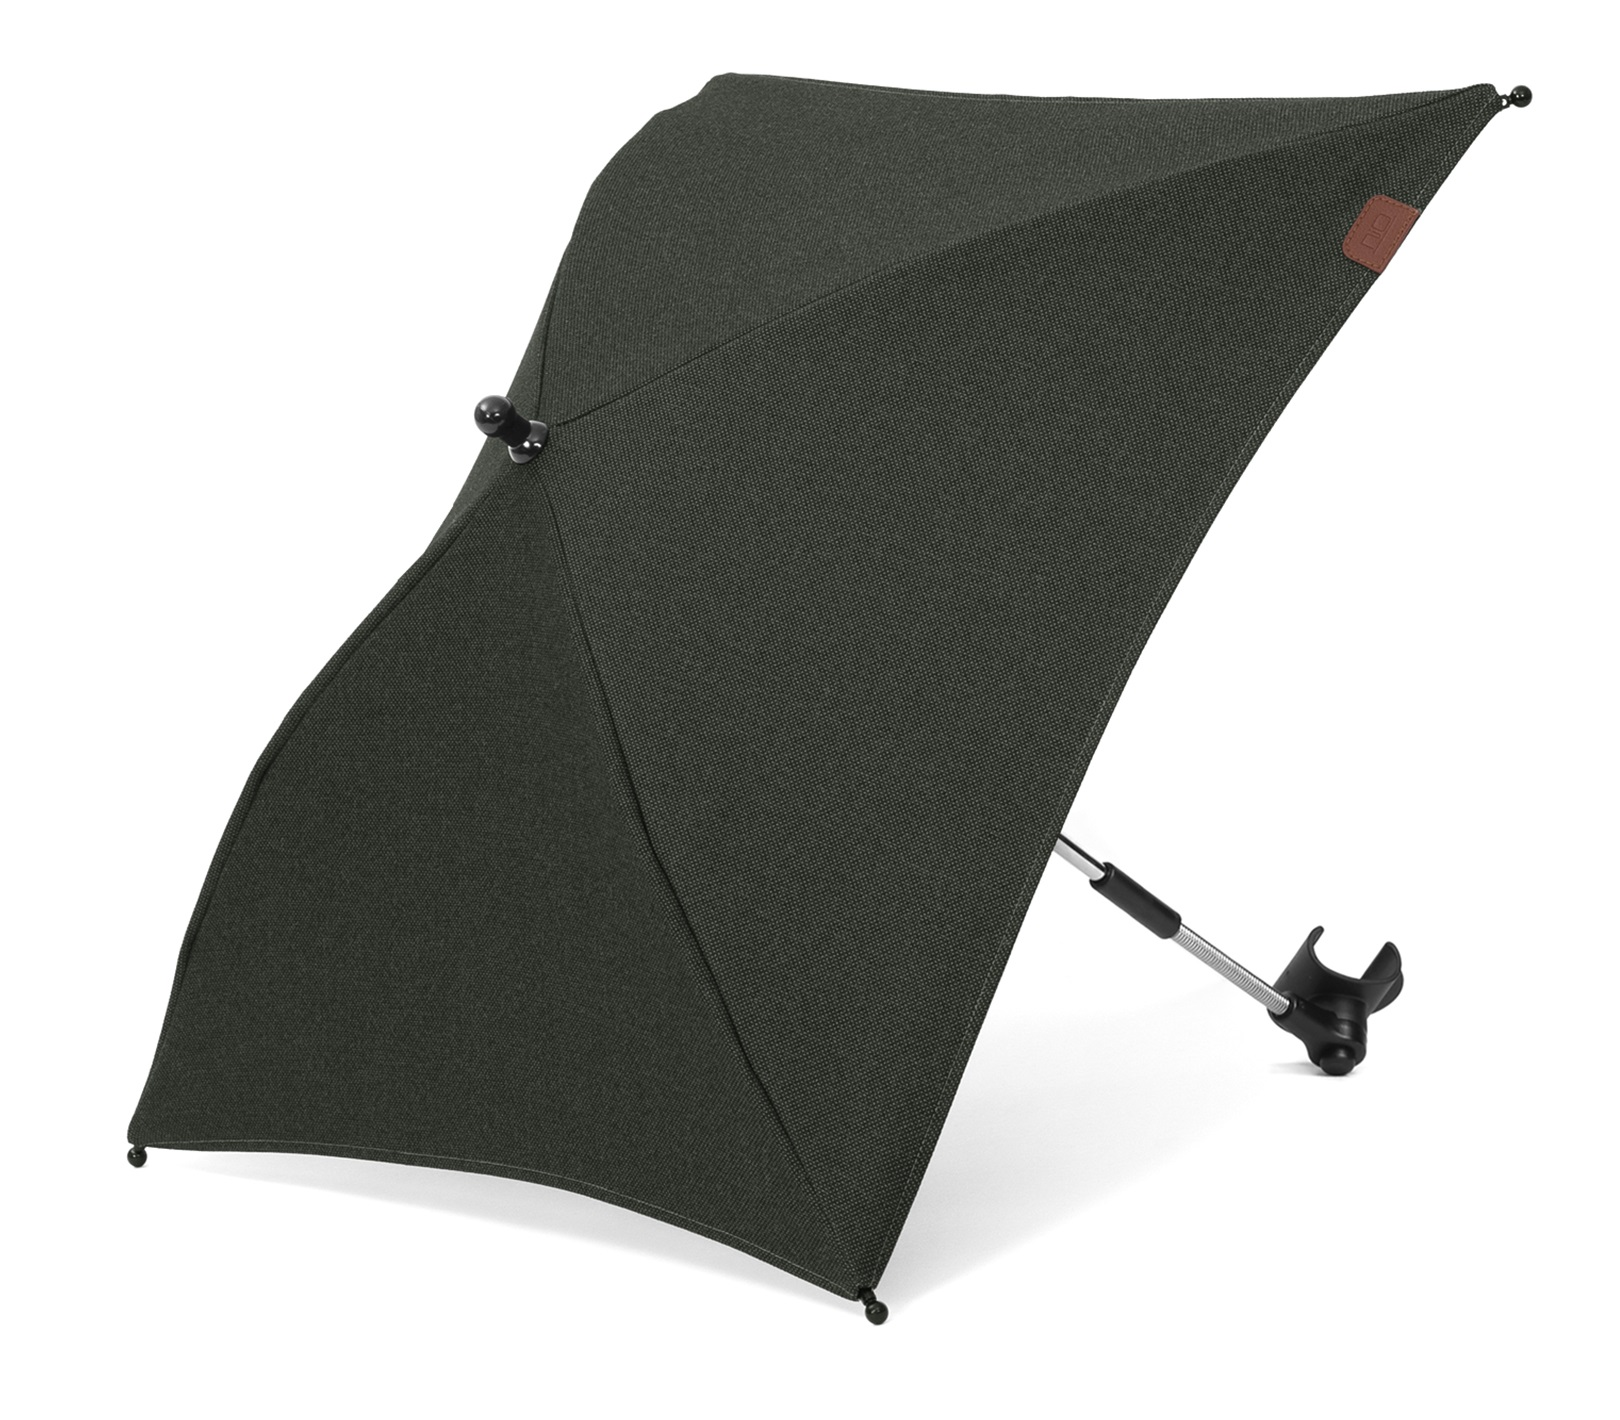 Mutsy-NIO-Parasol-Explore-Amazon-Green